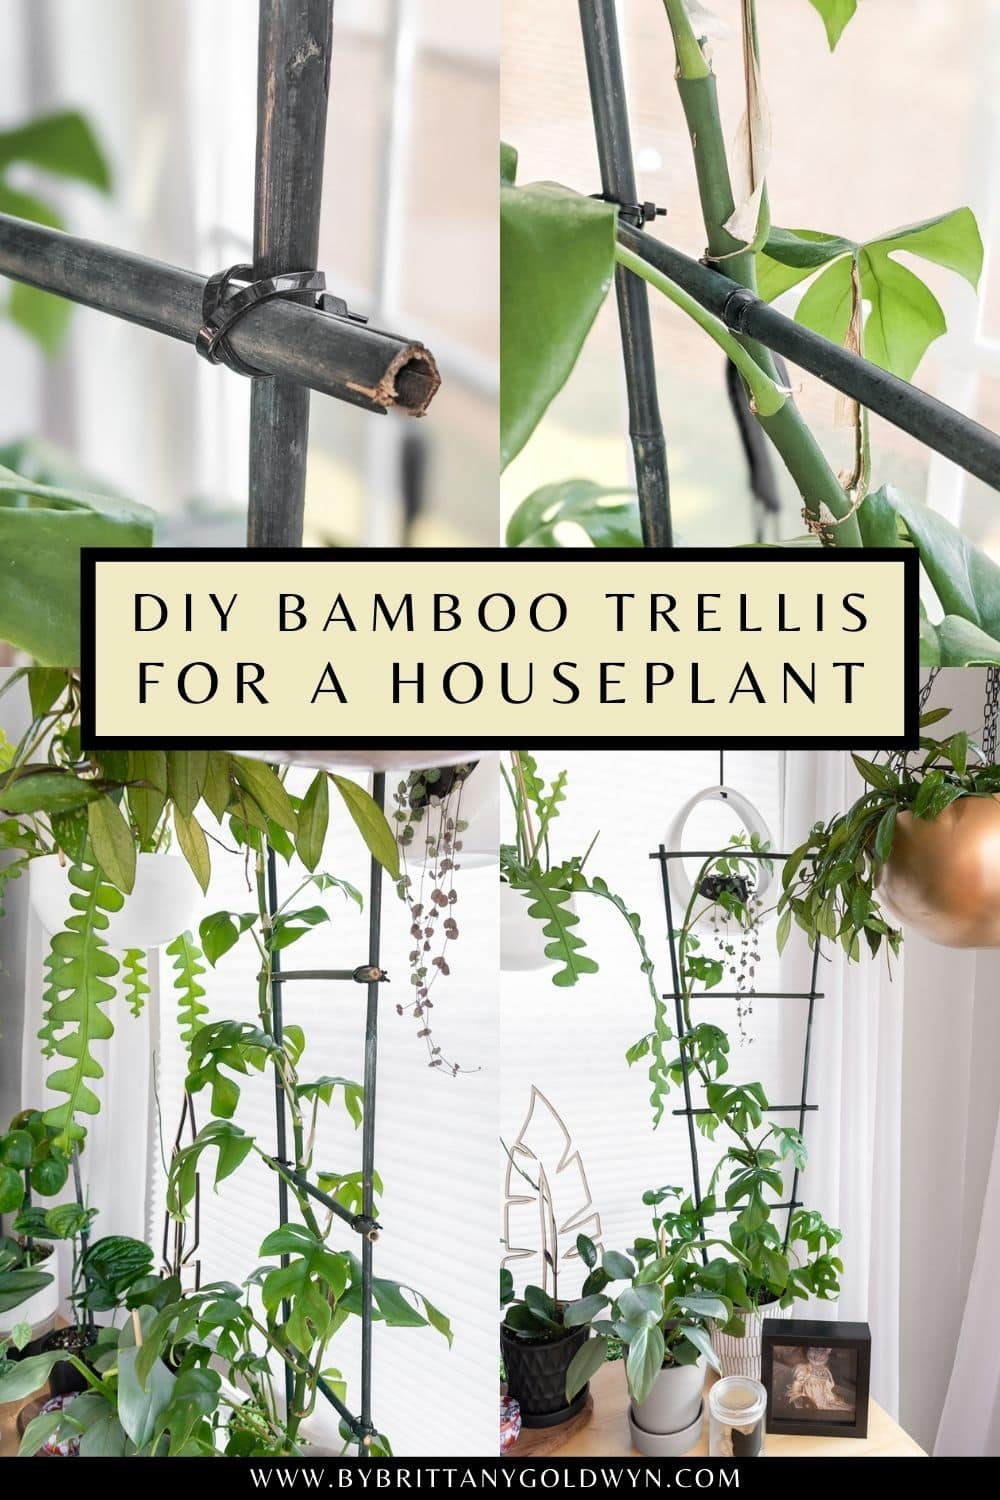 image collage of a DIY bamboo houseplant trellis with text overlay about how to make one